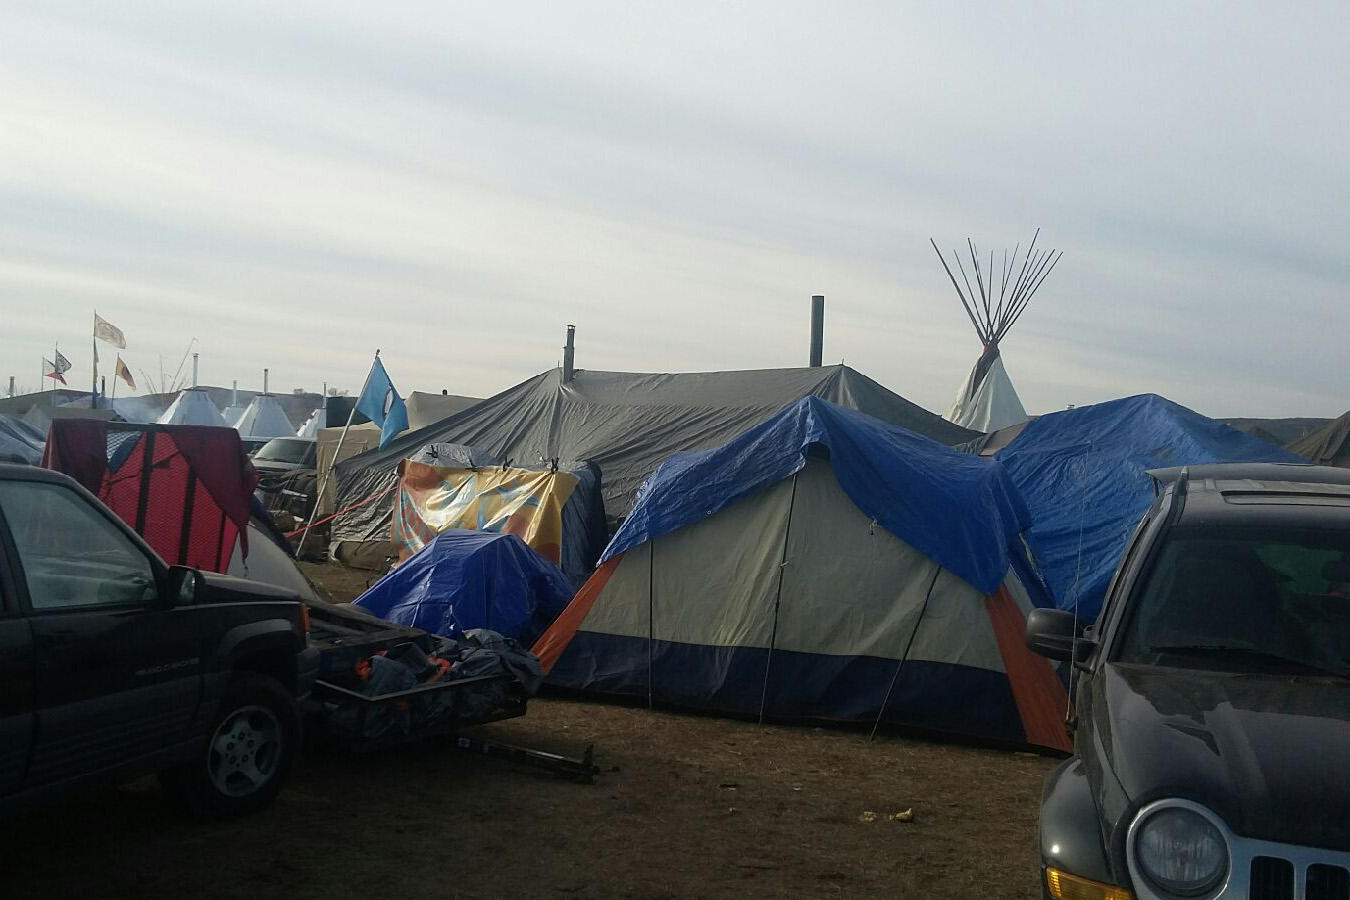 What's next for the Dakota Access Pipeline?